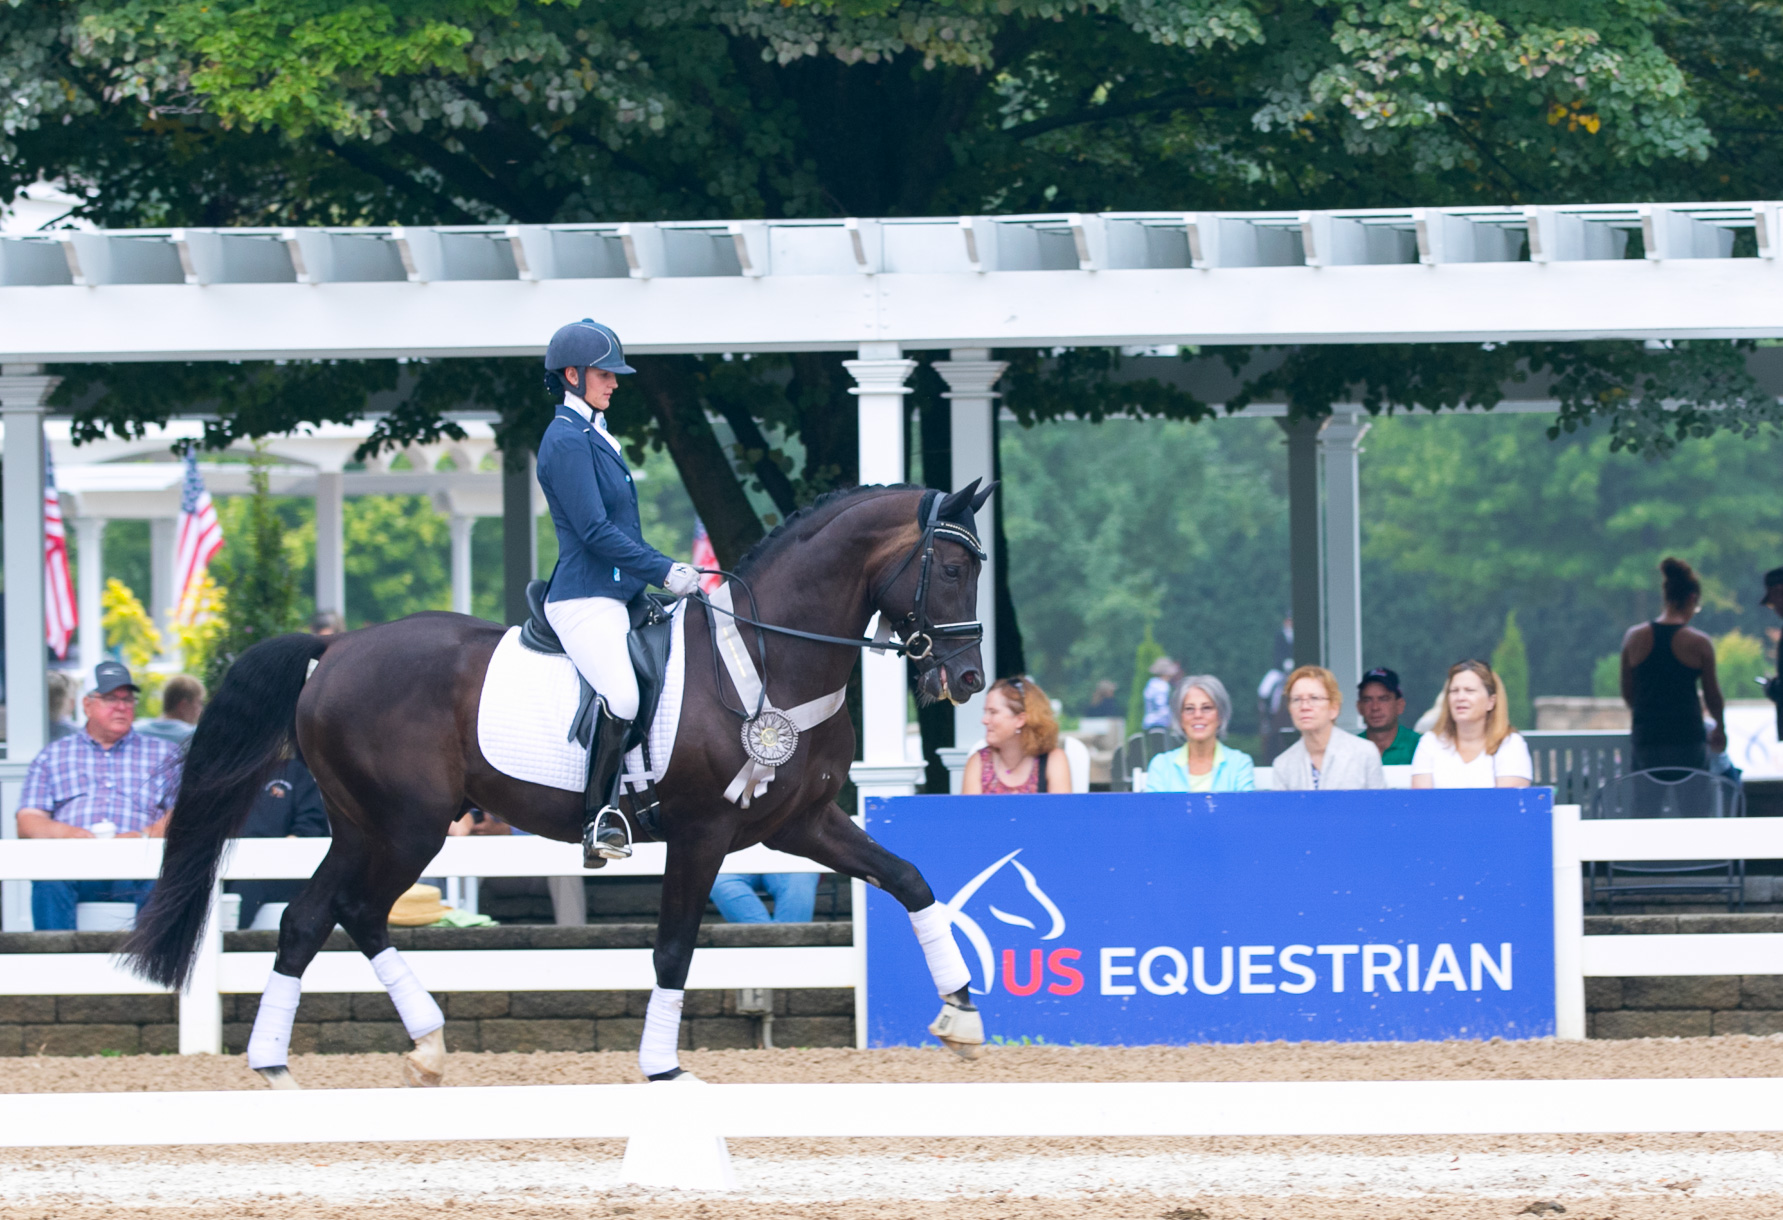 US NATIONAL CHAMPIONSHIP - Congratulations to team Davos CF and Anna Rae-Sue Keenan on a final placing of 9th in the US National Four Year Old Championships. There were some miscommunications in the Final test right in the beginning, but then the rest of the test went well. Proud of both of them.